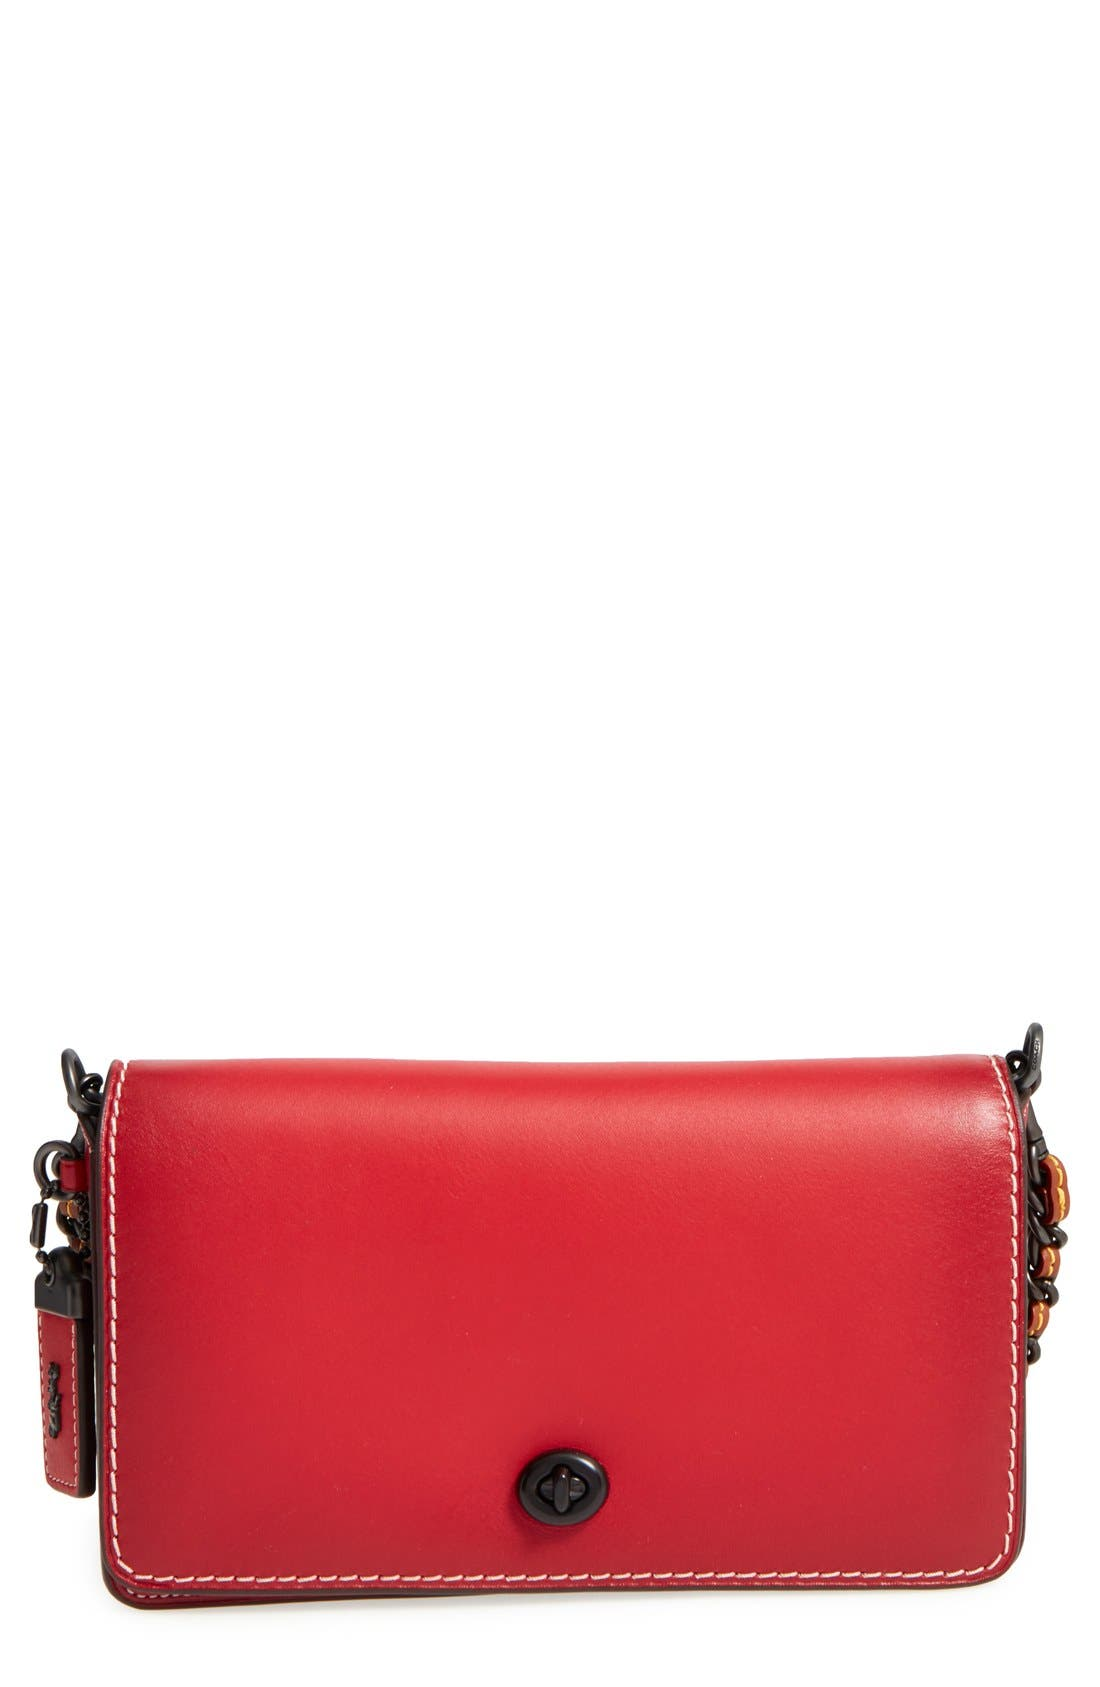 'Dinky' Leather Crossbody Bag,                             Main thumbnail 3, color,